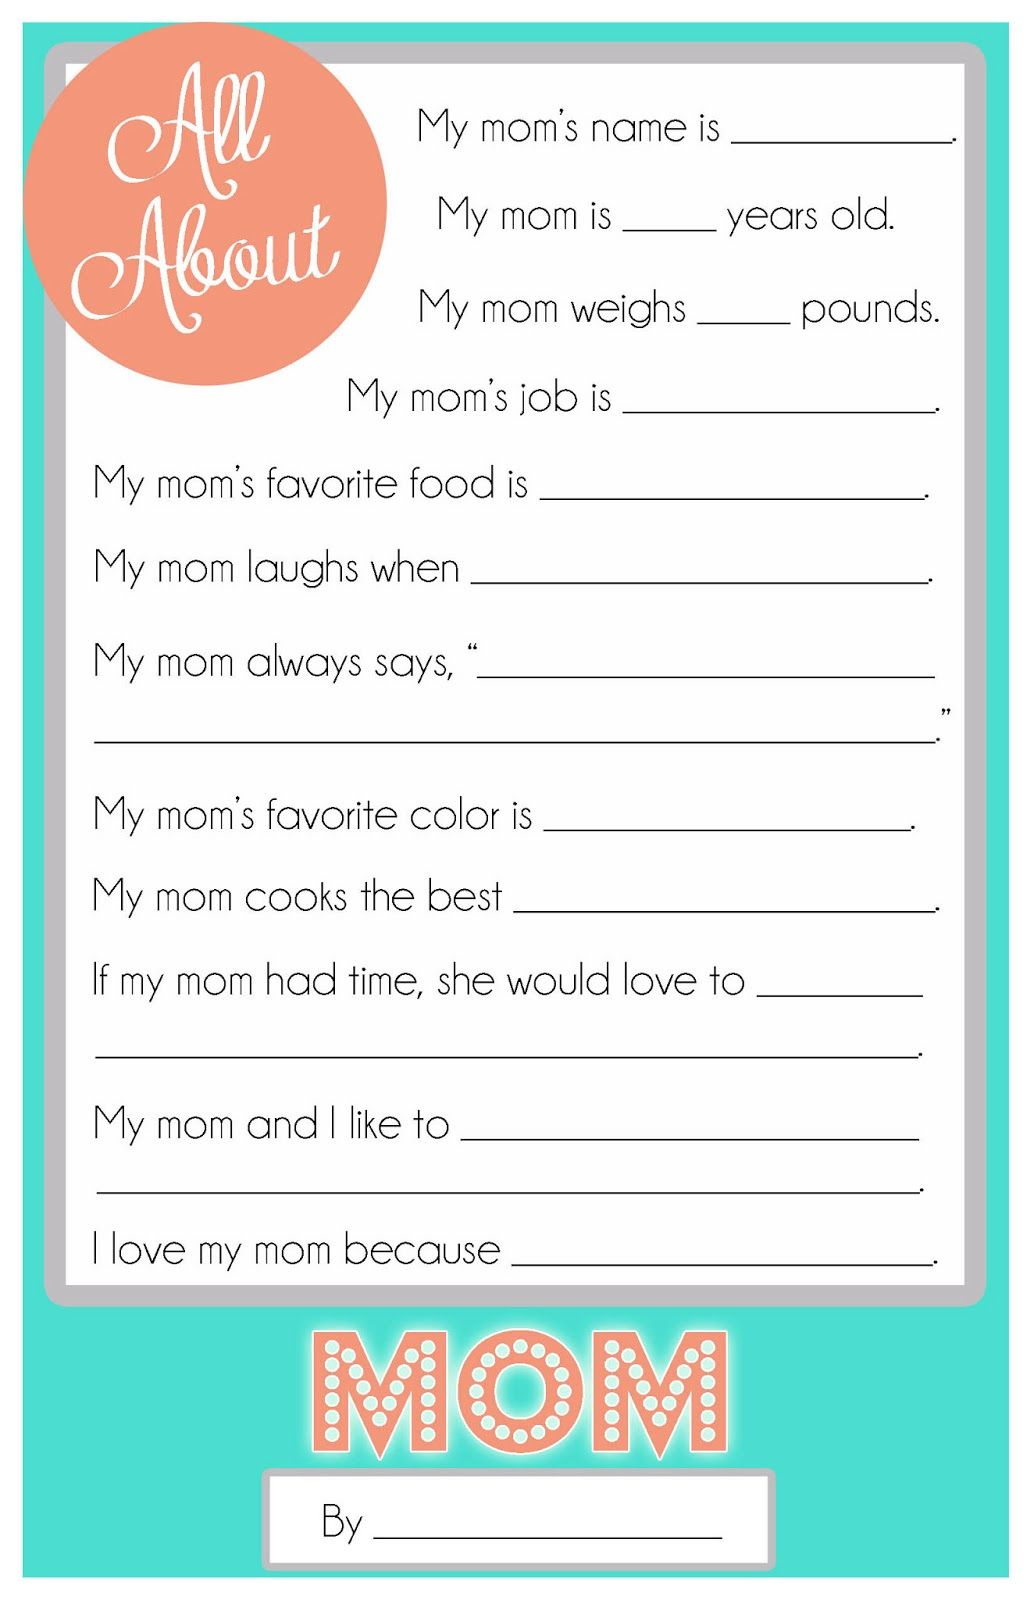 Mother S Day Questionnaire A Free Printable For The Kids